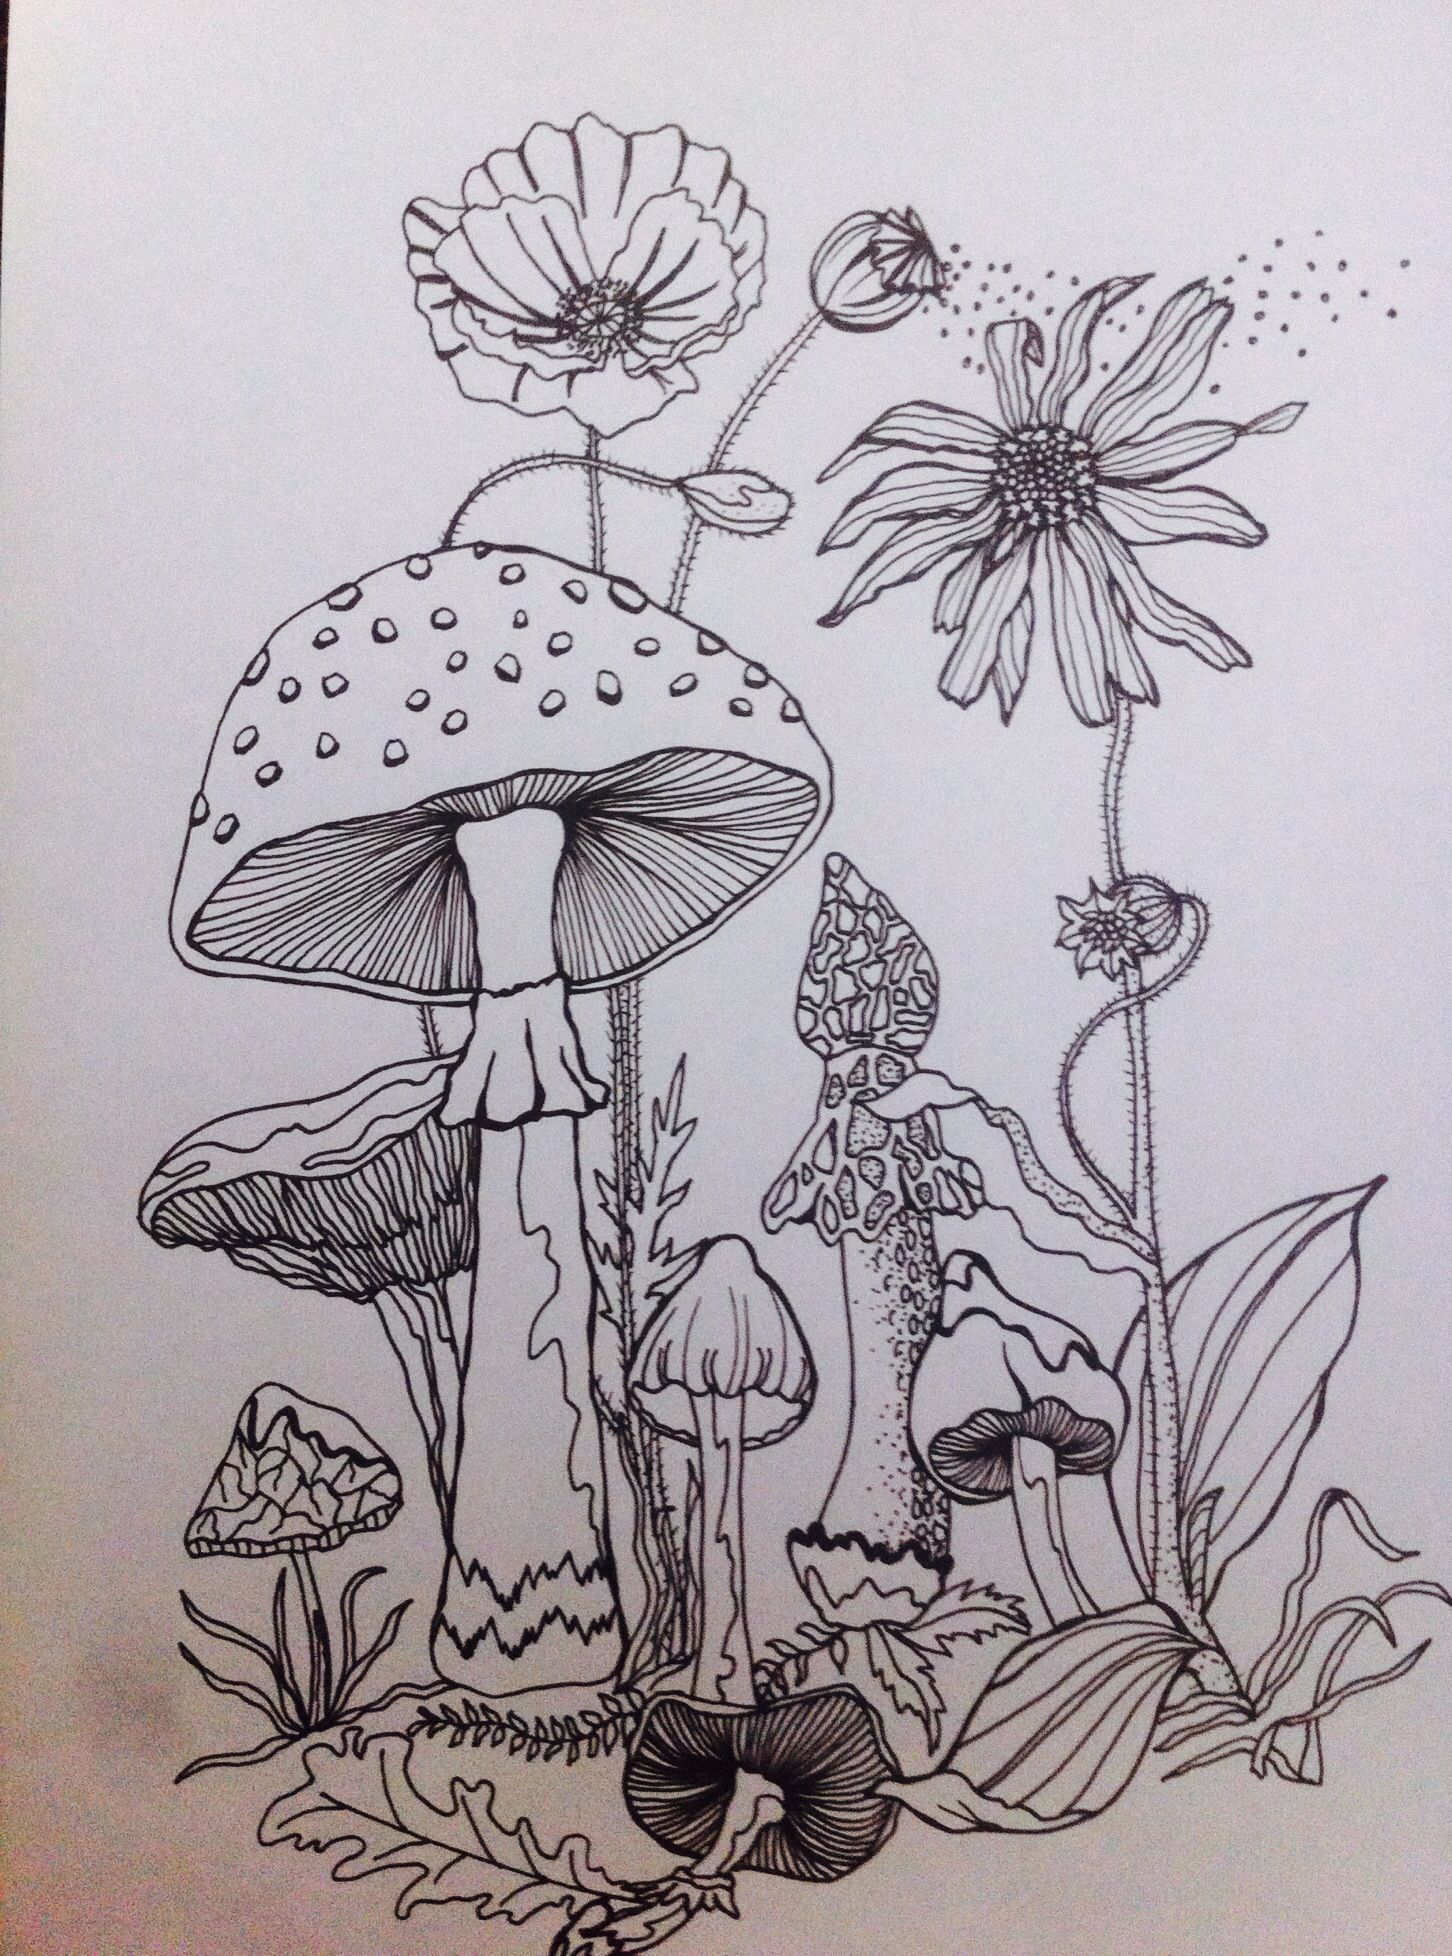 Moon drawing 75 picture ideas illustration blume forrest illustration nature sketch nature